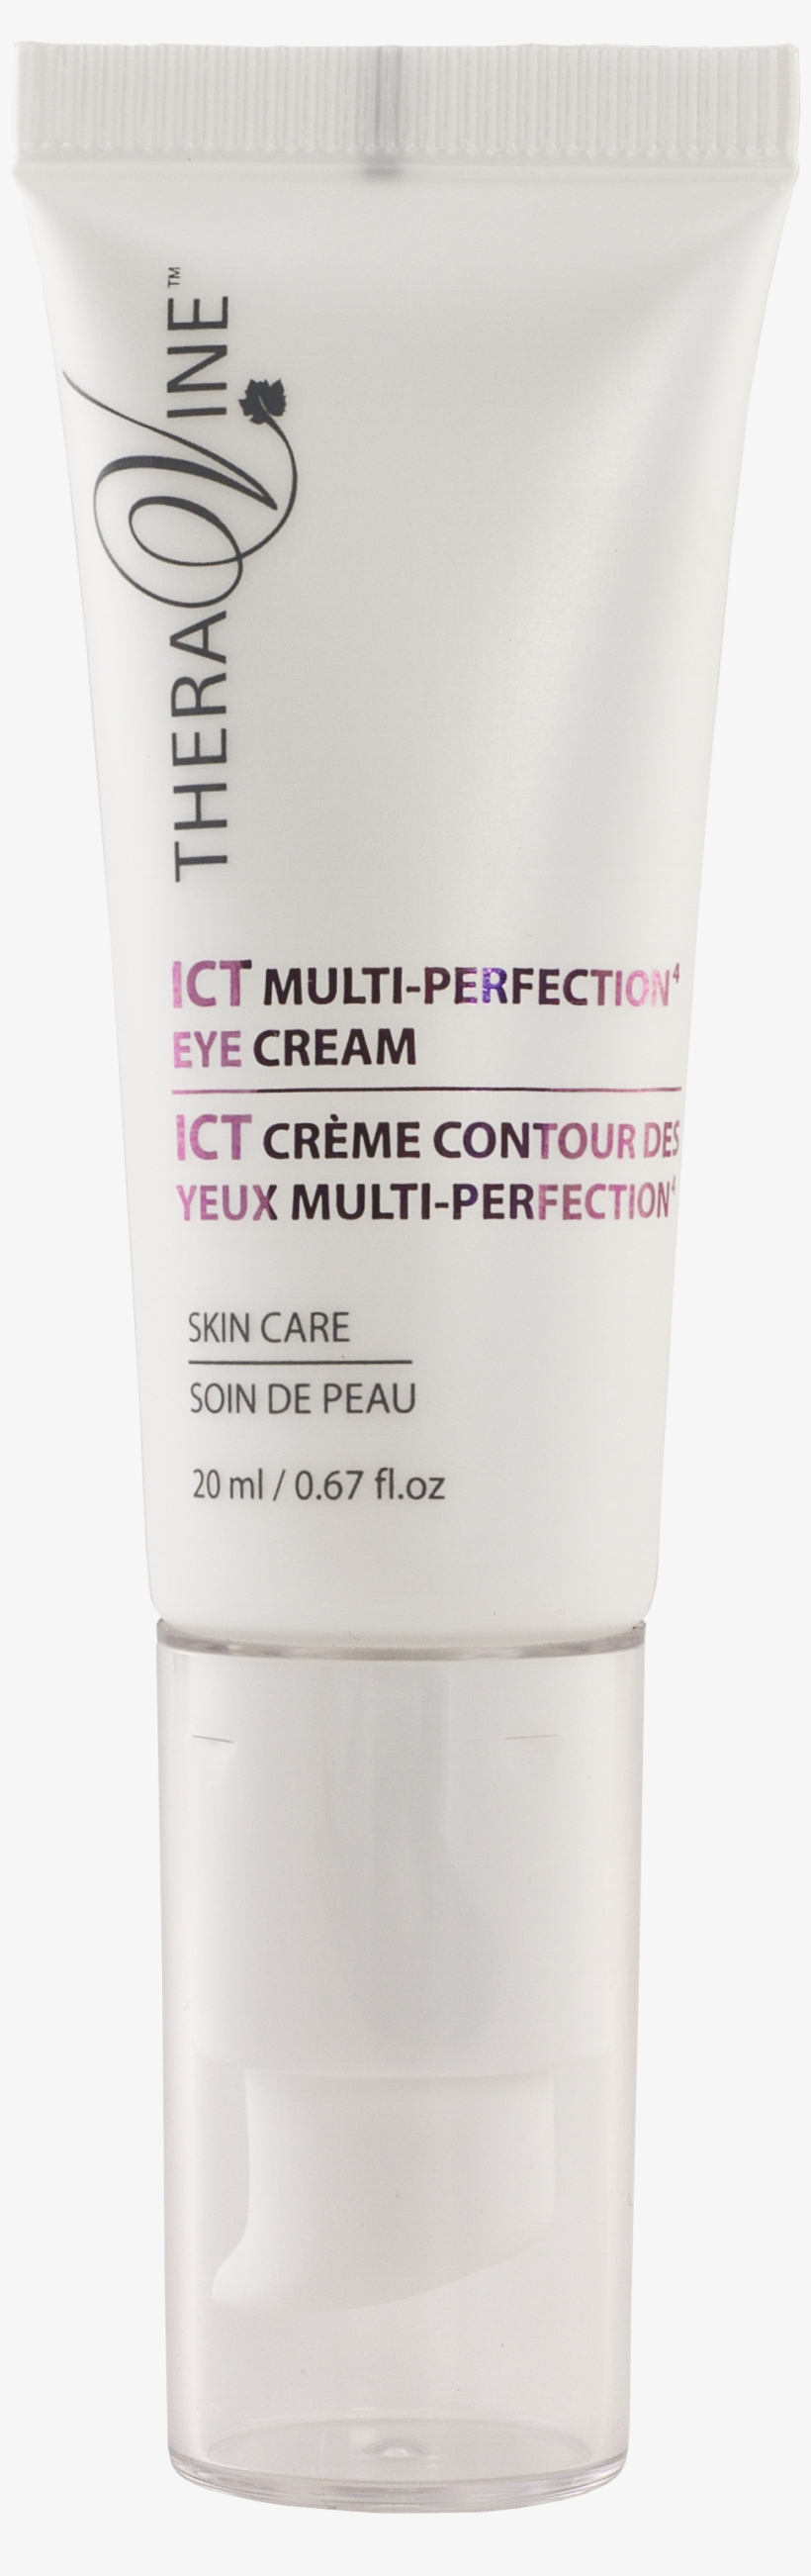 T693 Multi-perfection Eye Cream 20ml - Natural Moisturizing Factors Ha 100ml, transparent png #989756